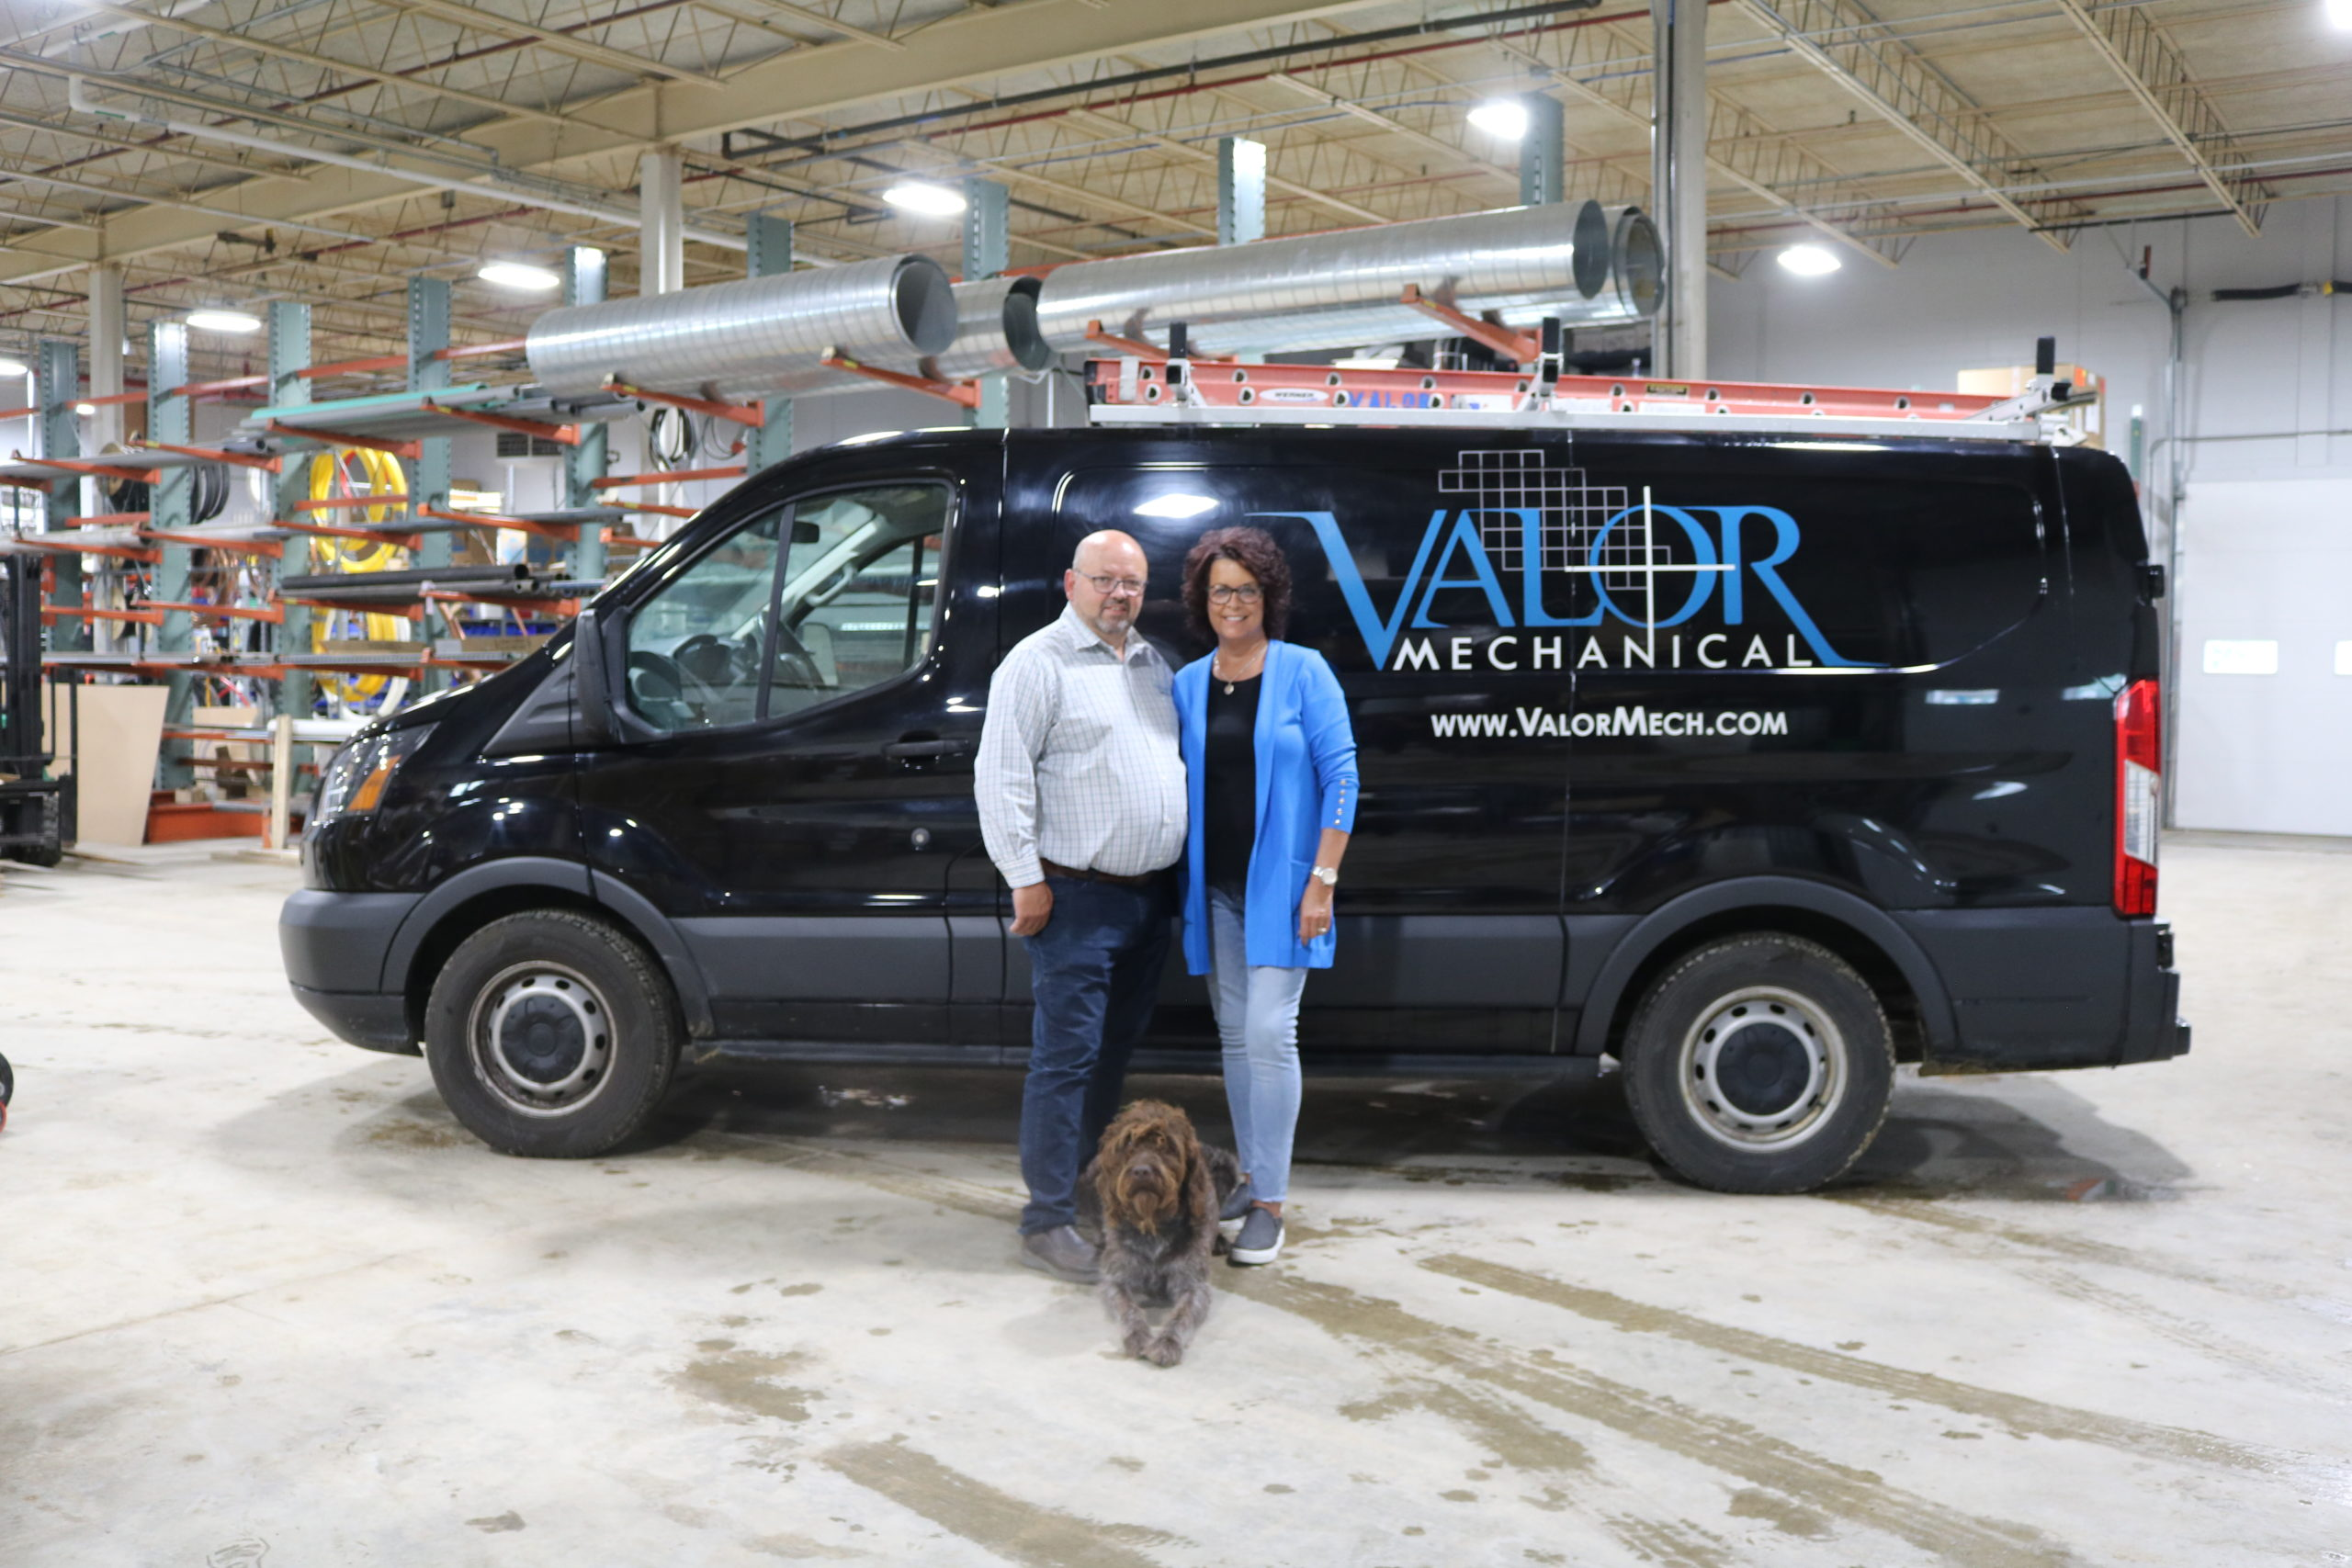 You are currently viewing Sheldon Plumbing and Heating Recommends Valor Mechanical